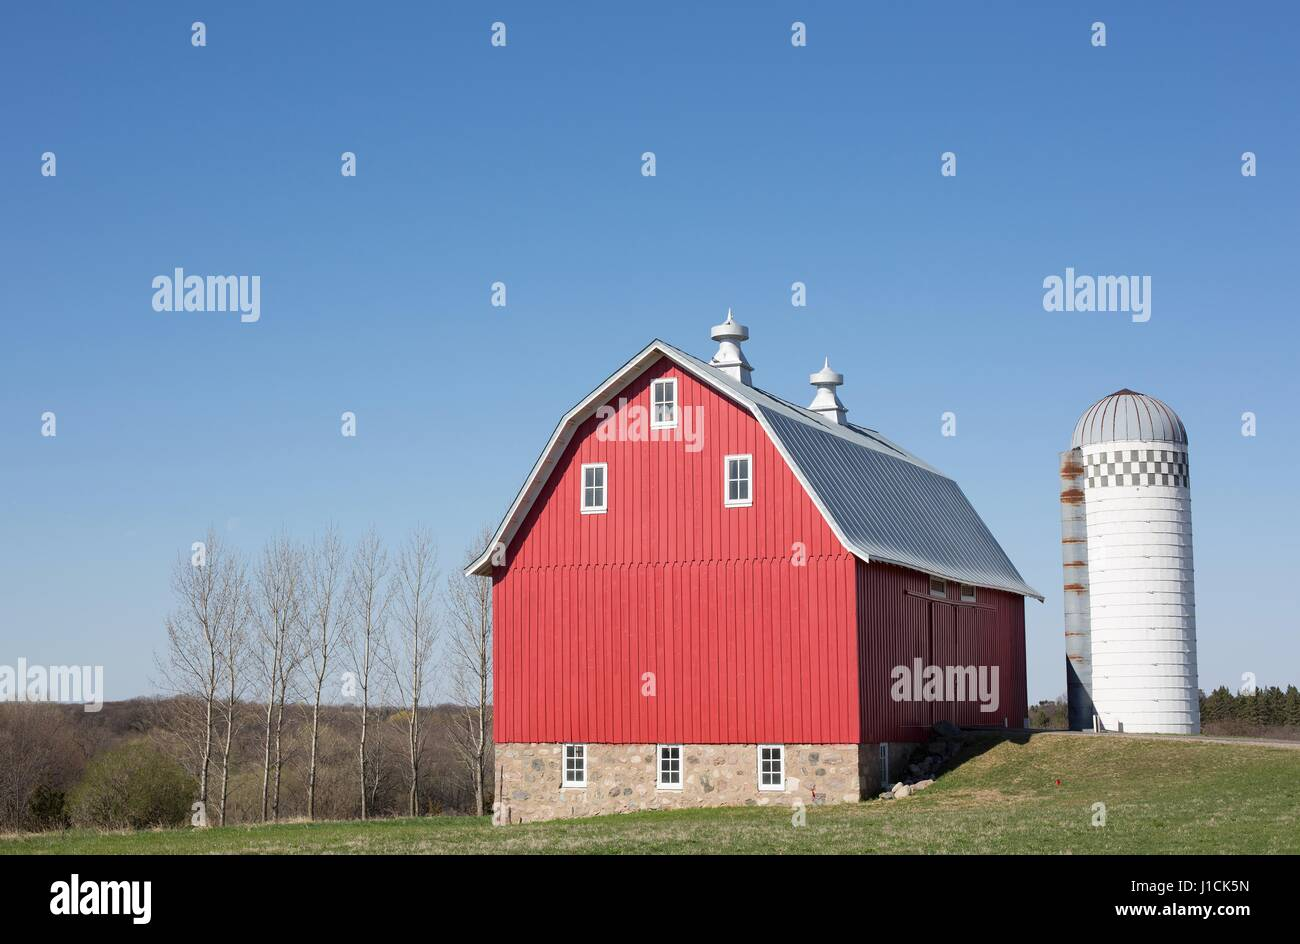 Cow on green pasture with red barn with grain silo royalty free stock - A Red Barn And Grain Silo In Minnesota Stock Image